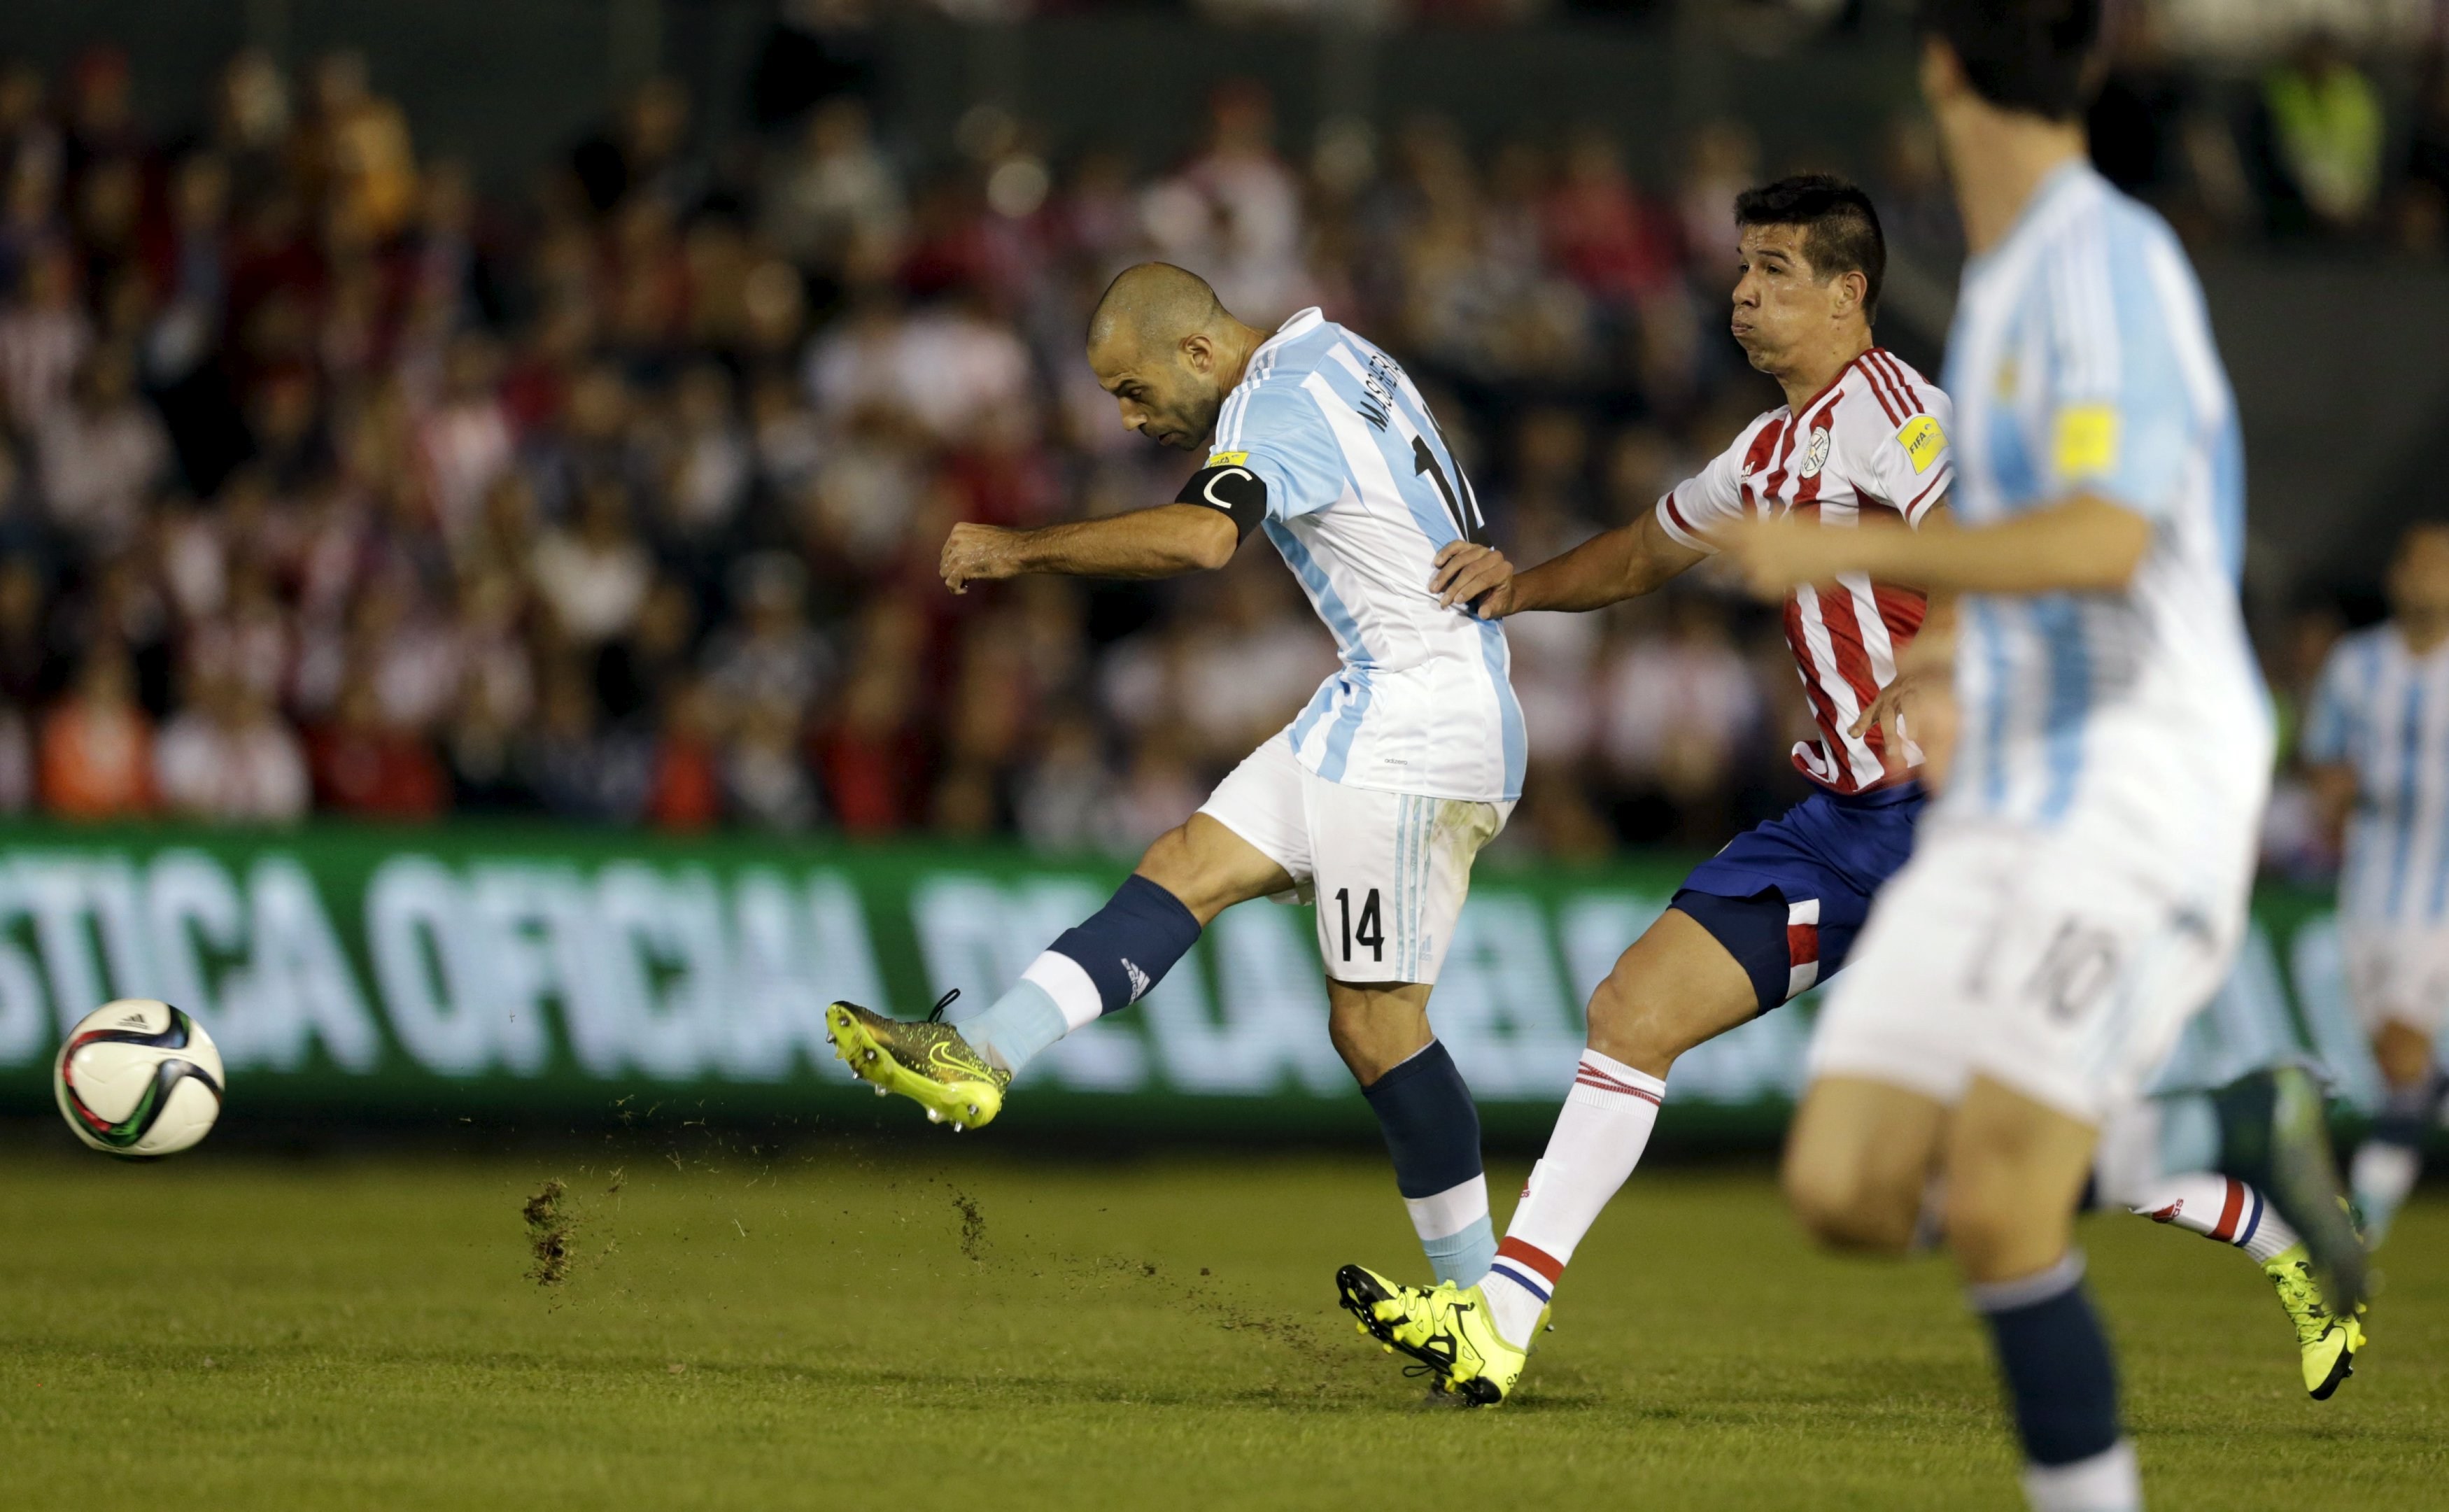 Argentina's Javier Mascherano (L) kicks the ball ahead of Paraguay's Victor Caceres during their 2018 World Cup qualifying soccer match at the Defensores del Chaco stadium in Asuncion, Paraguay, October 13, 2015.      REUTERS/Jorge Adorno